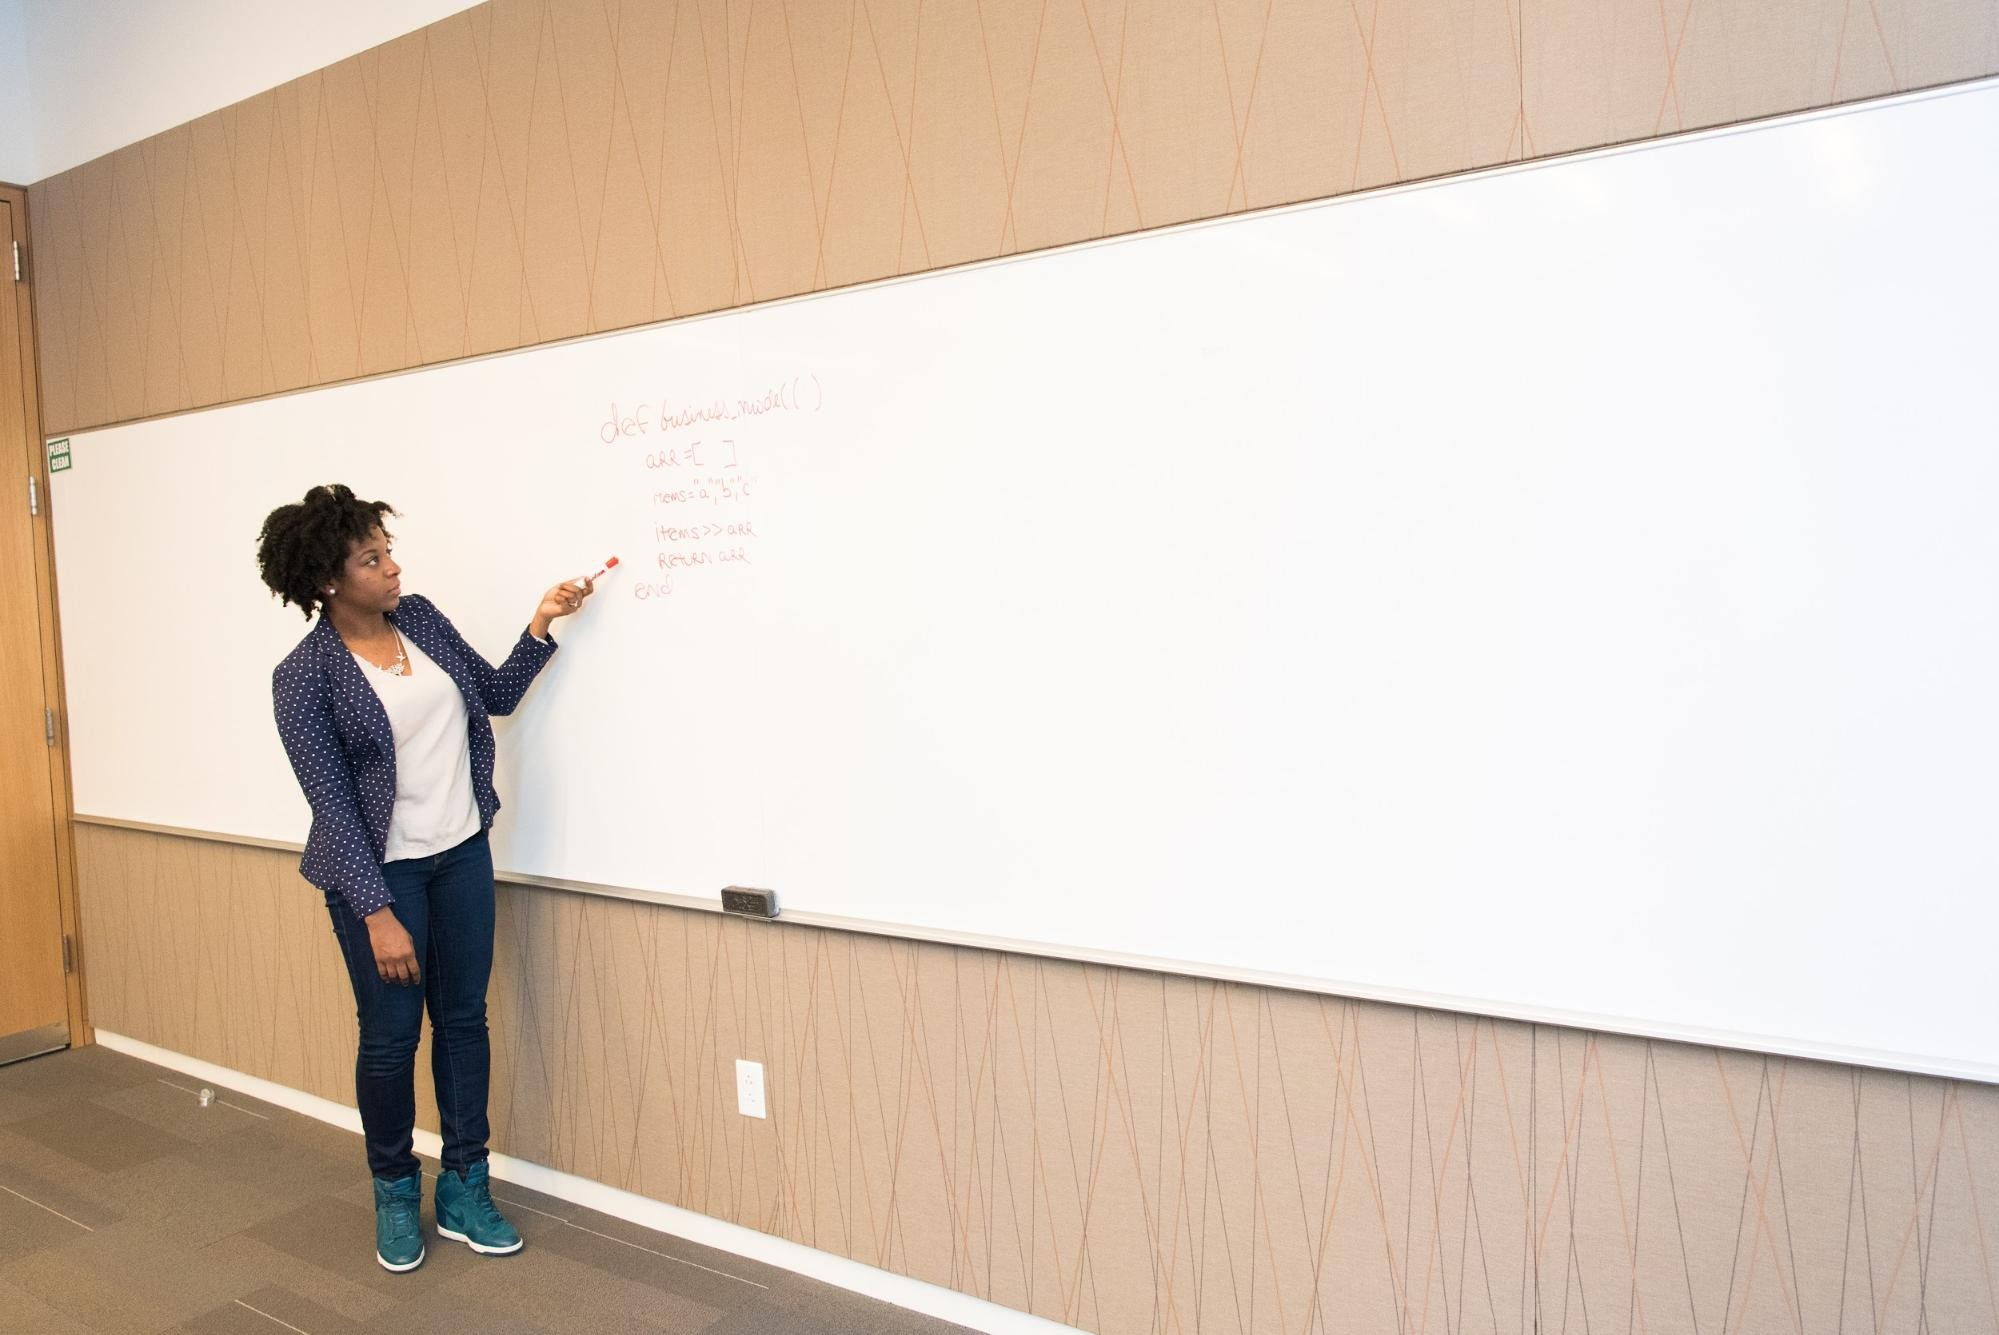 Teacher stands at whiteboard and points with marker at red writing.